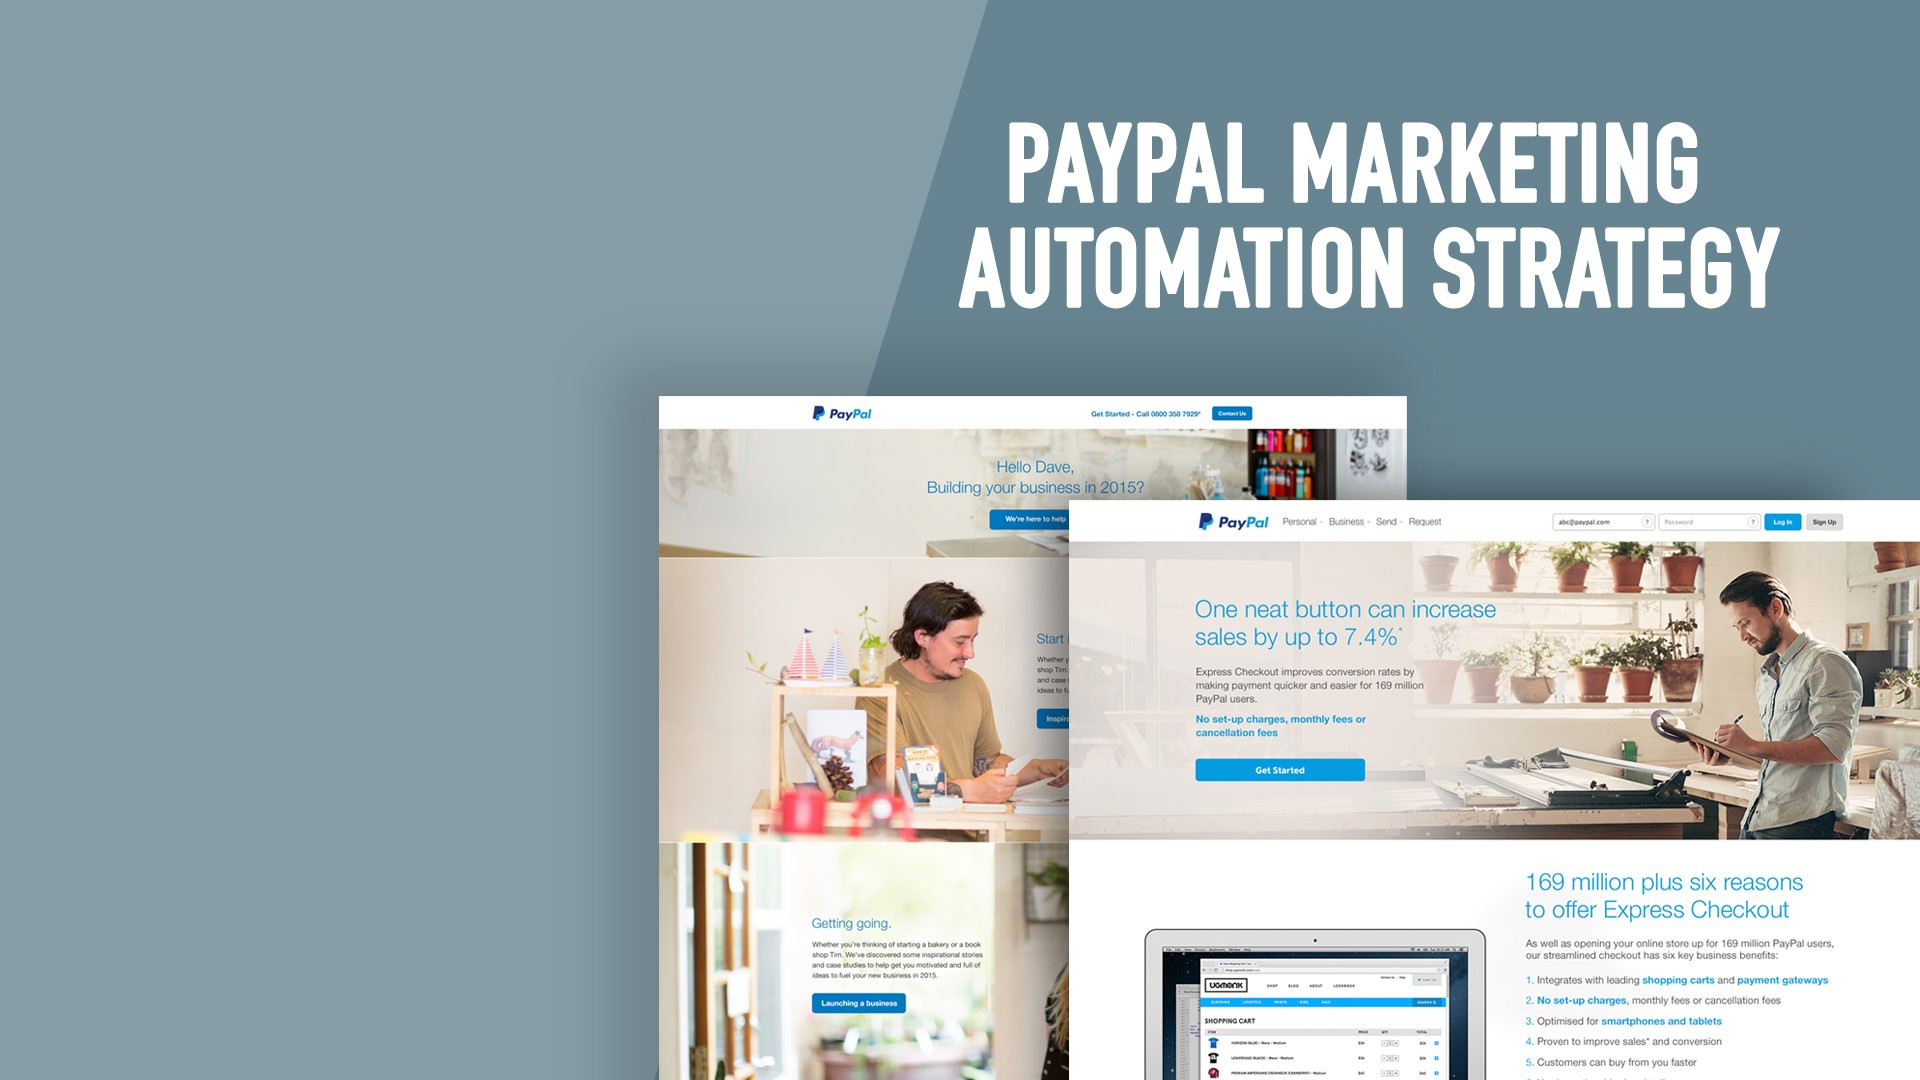 PayPal Marketing Automation Strategy